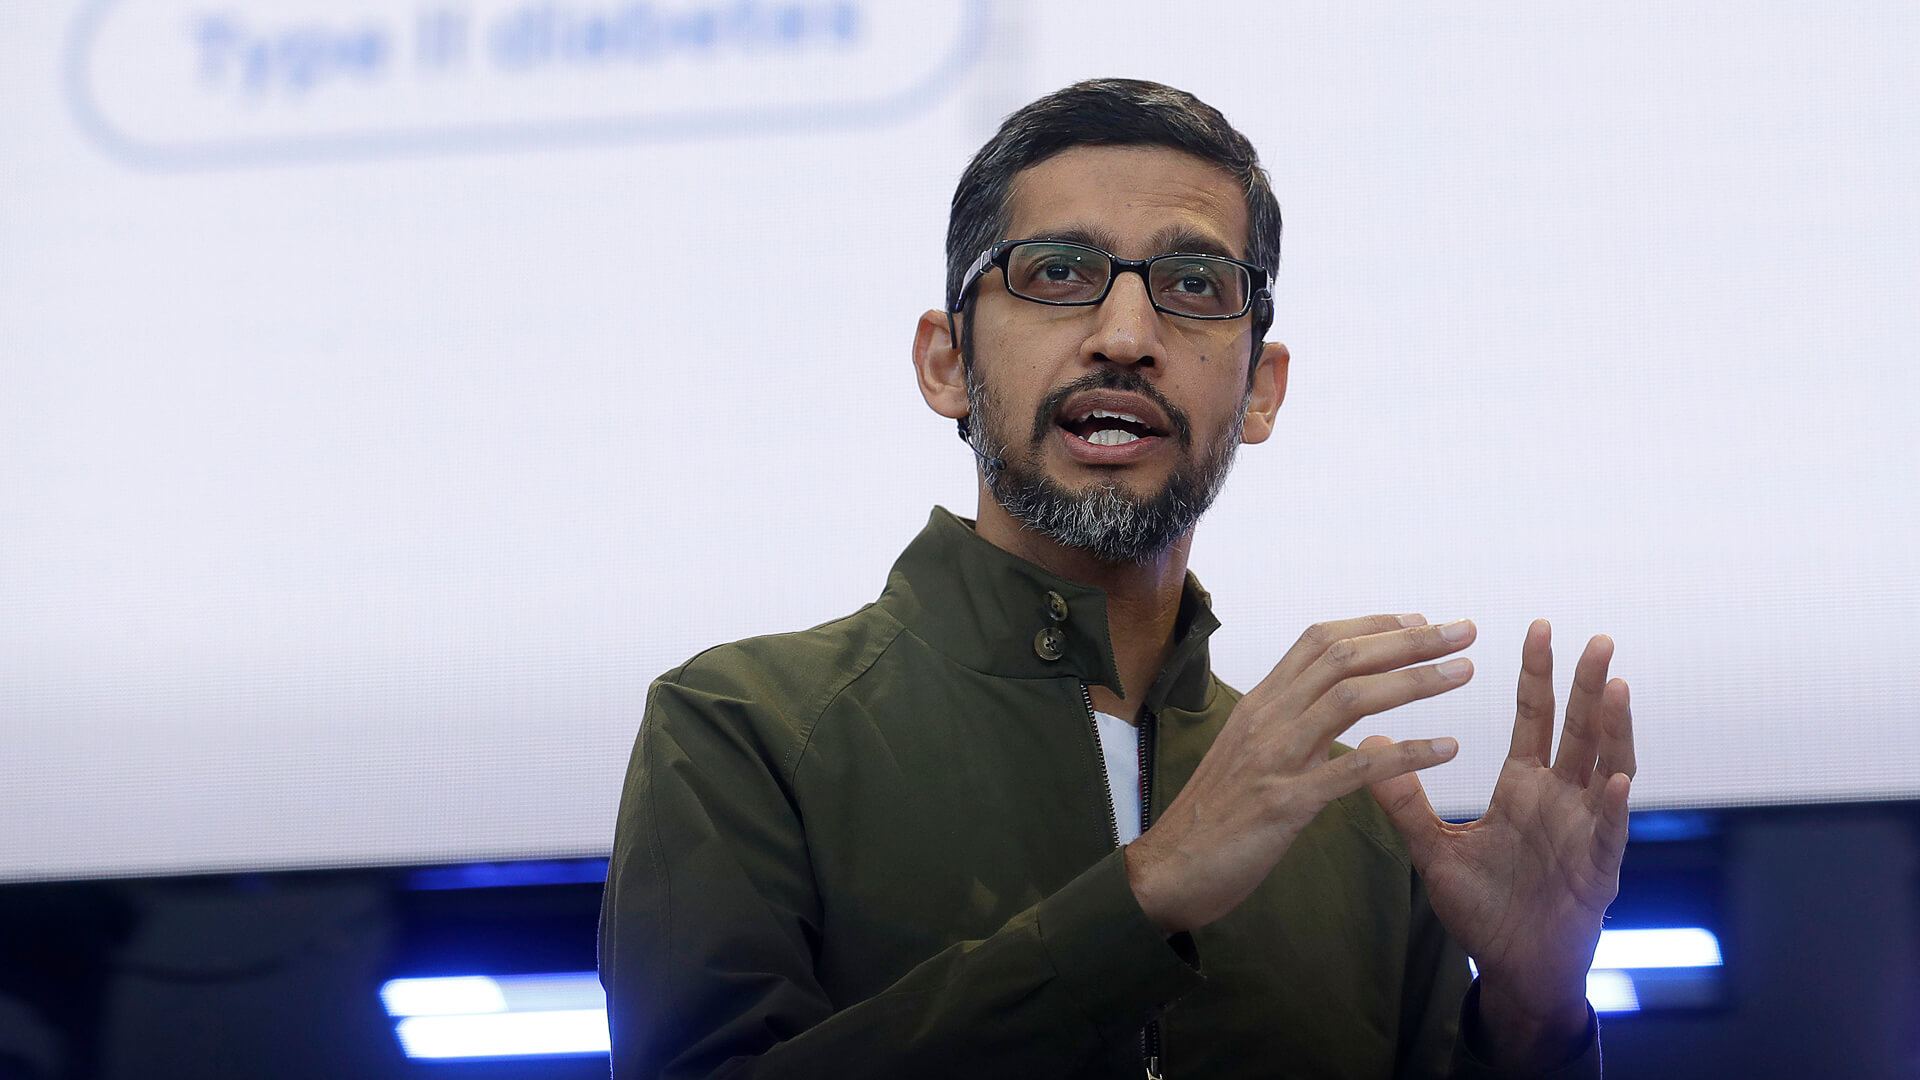 Photo by Jeff Chiu/AP/REX/Shutterstock Google CEO Sundar Pichai speaks at the Google I/O conference in Mountain View, Calif.